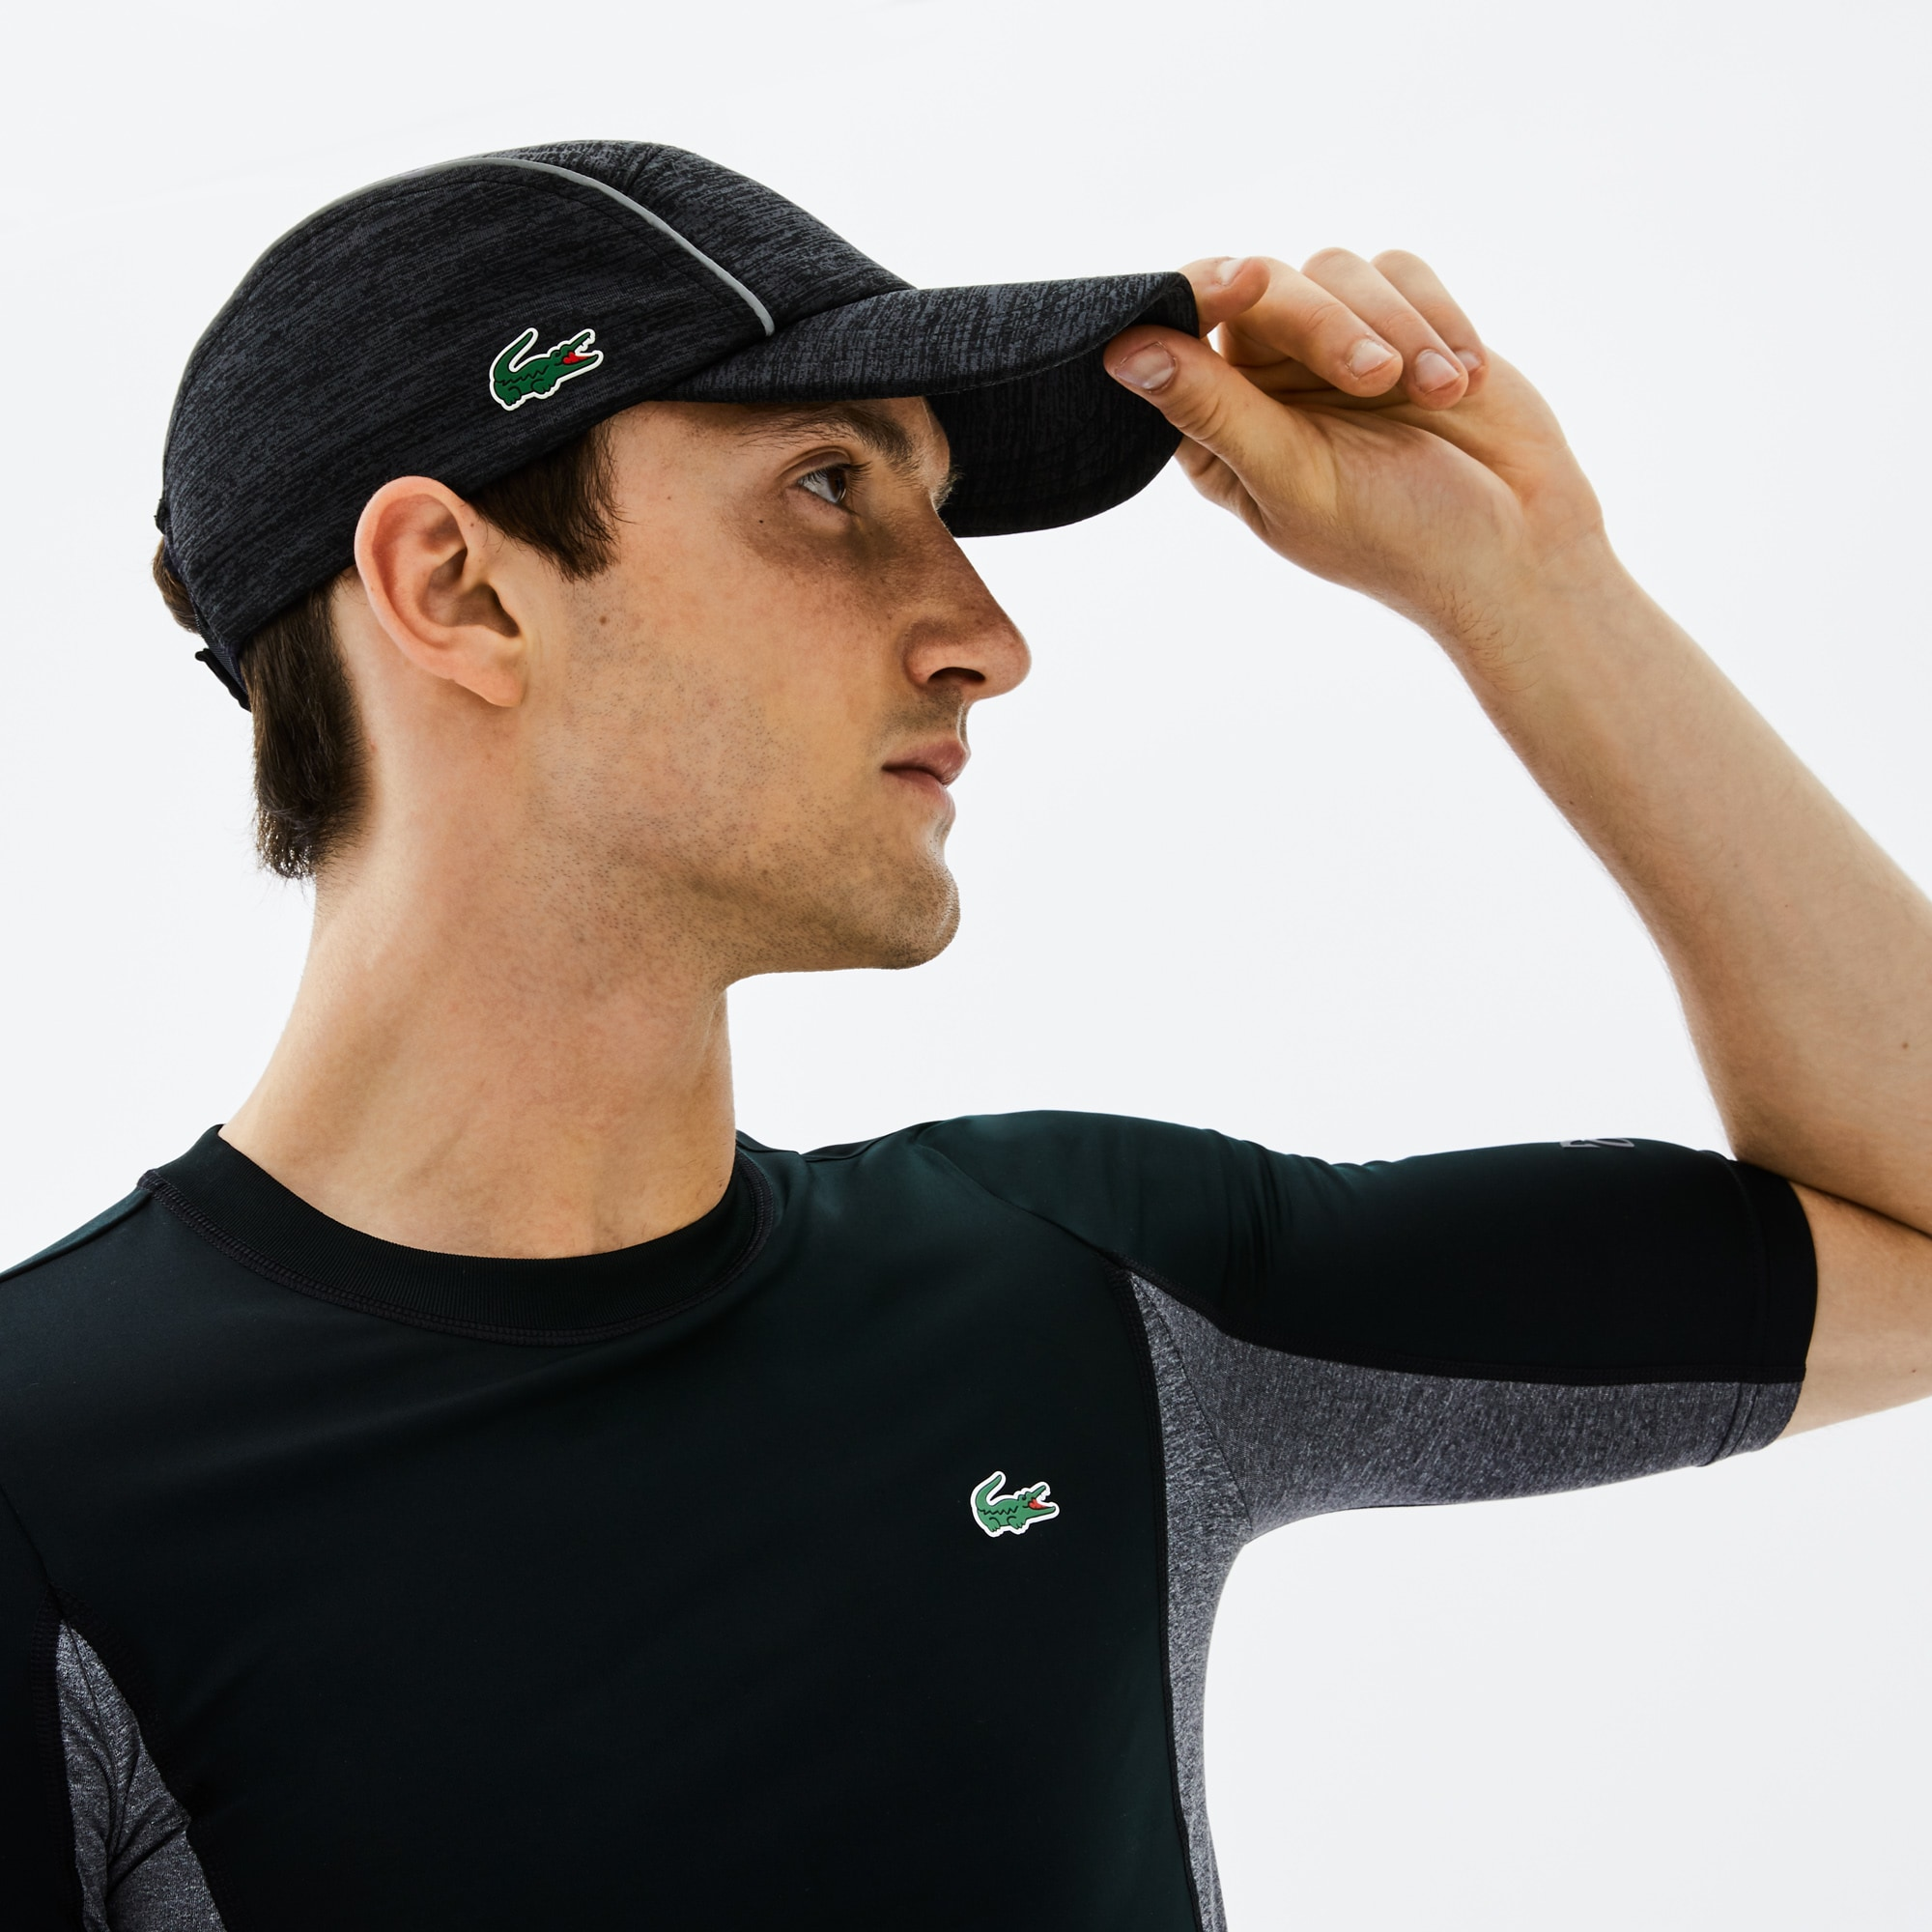 ead5f361 Men's Caps & Hats | Men's Accessories | LACOSTE